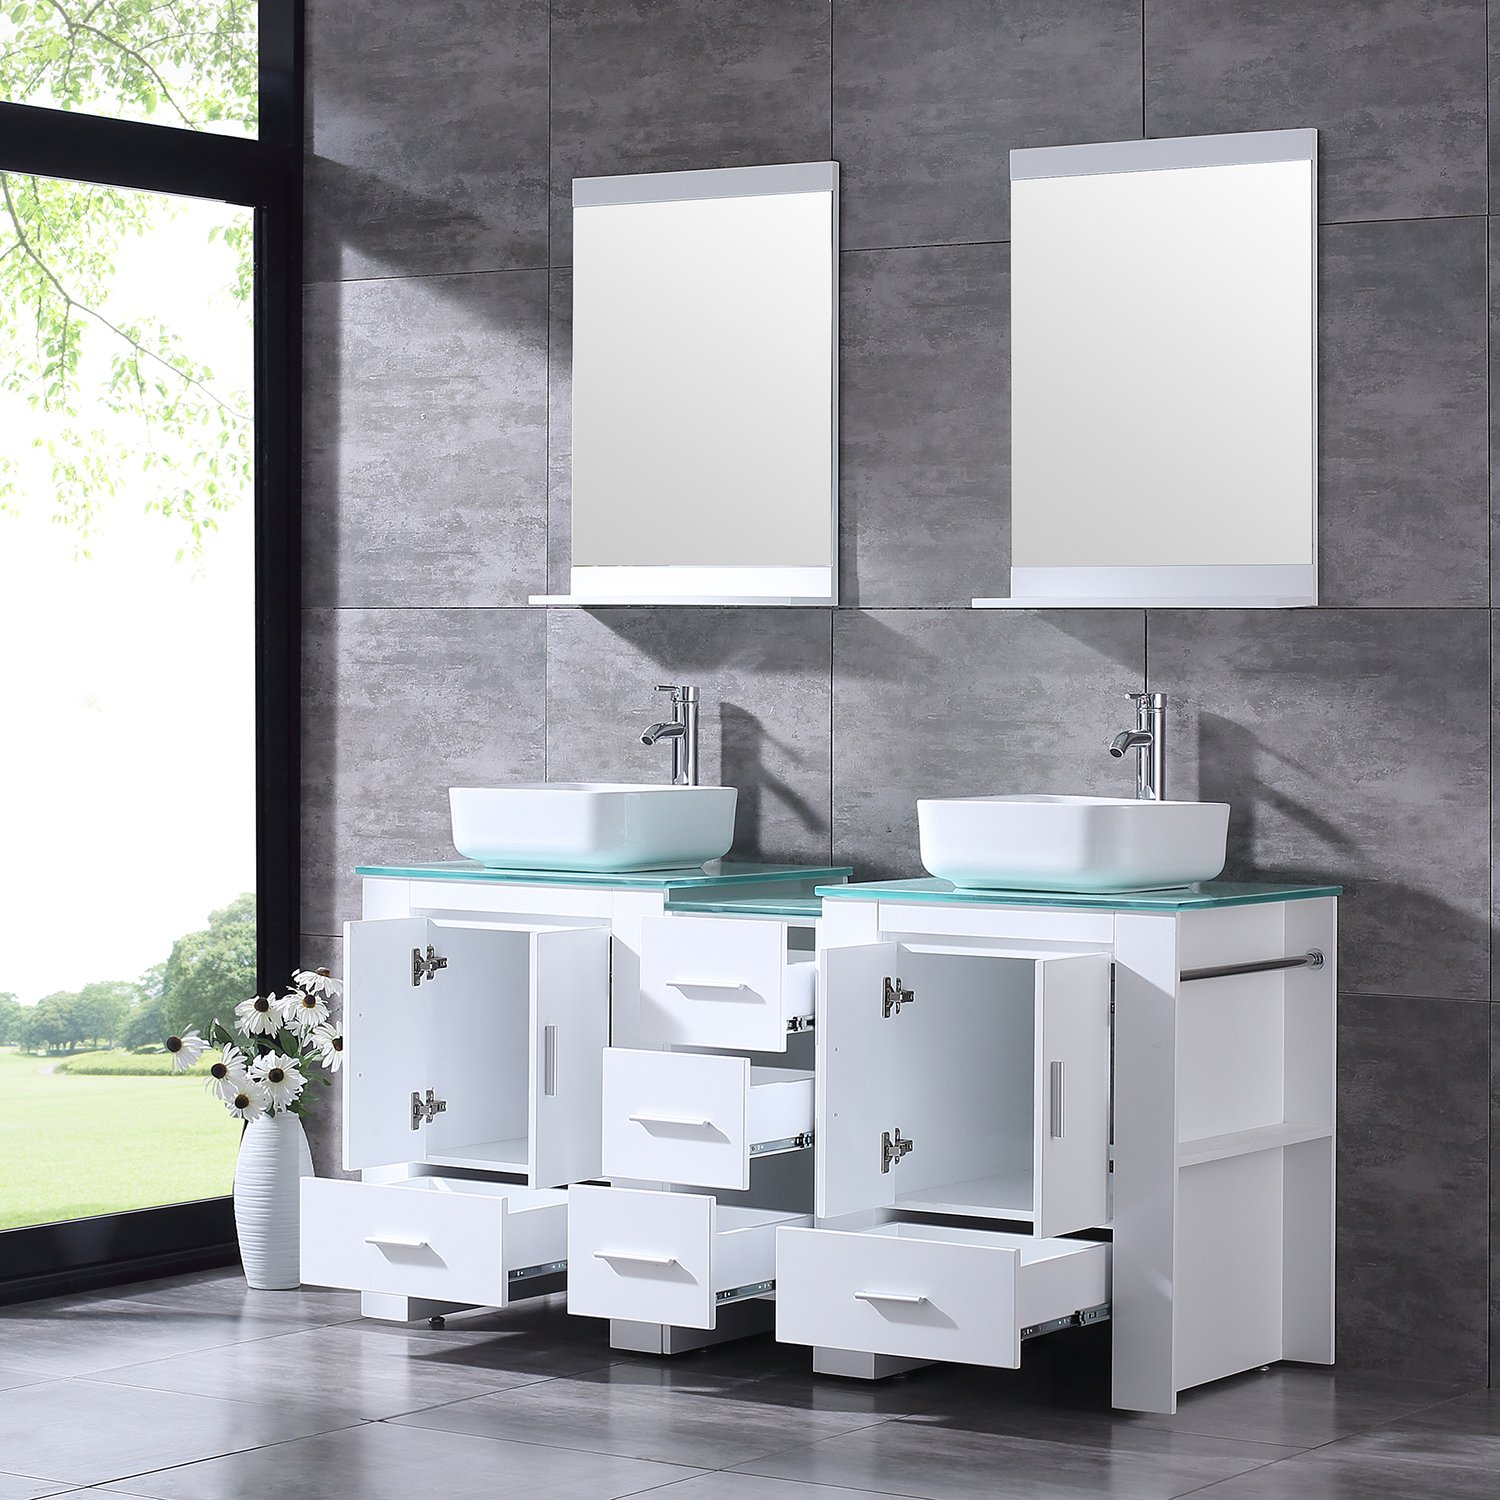 """BATHJOY Luxury 60"""" White Bathroom Double Wood Vanity Cabinet with Square Ceramic Vessel Sink and Mirrors Faucet Drain Combo by BATHJOY (Image #3)"""